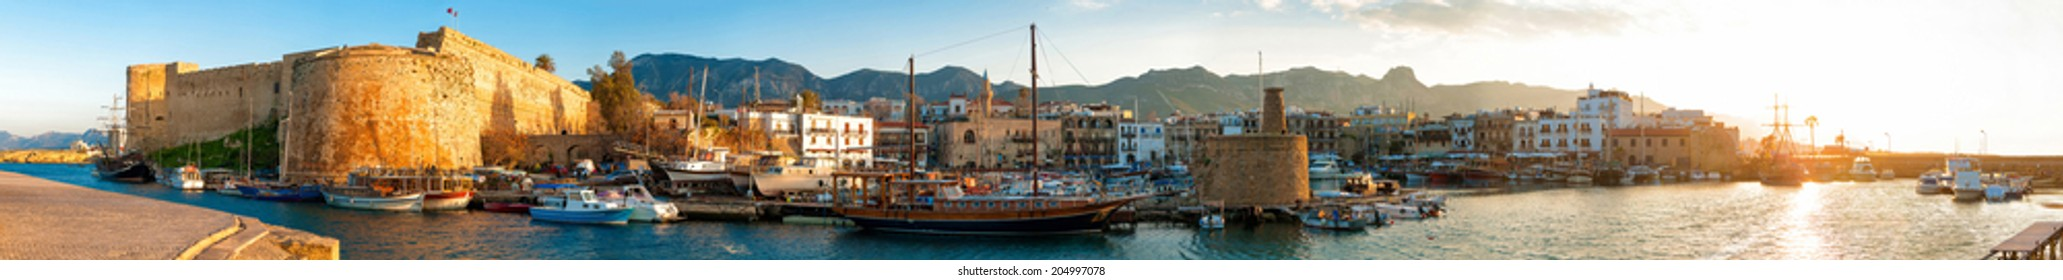 Kyrenia harbour and Medieval castle, Cyprus.